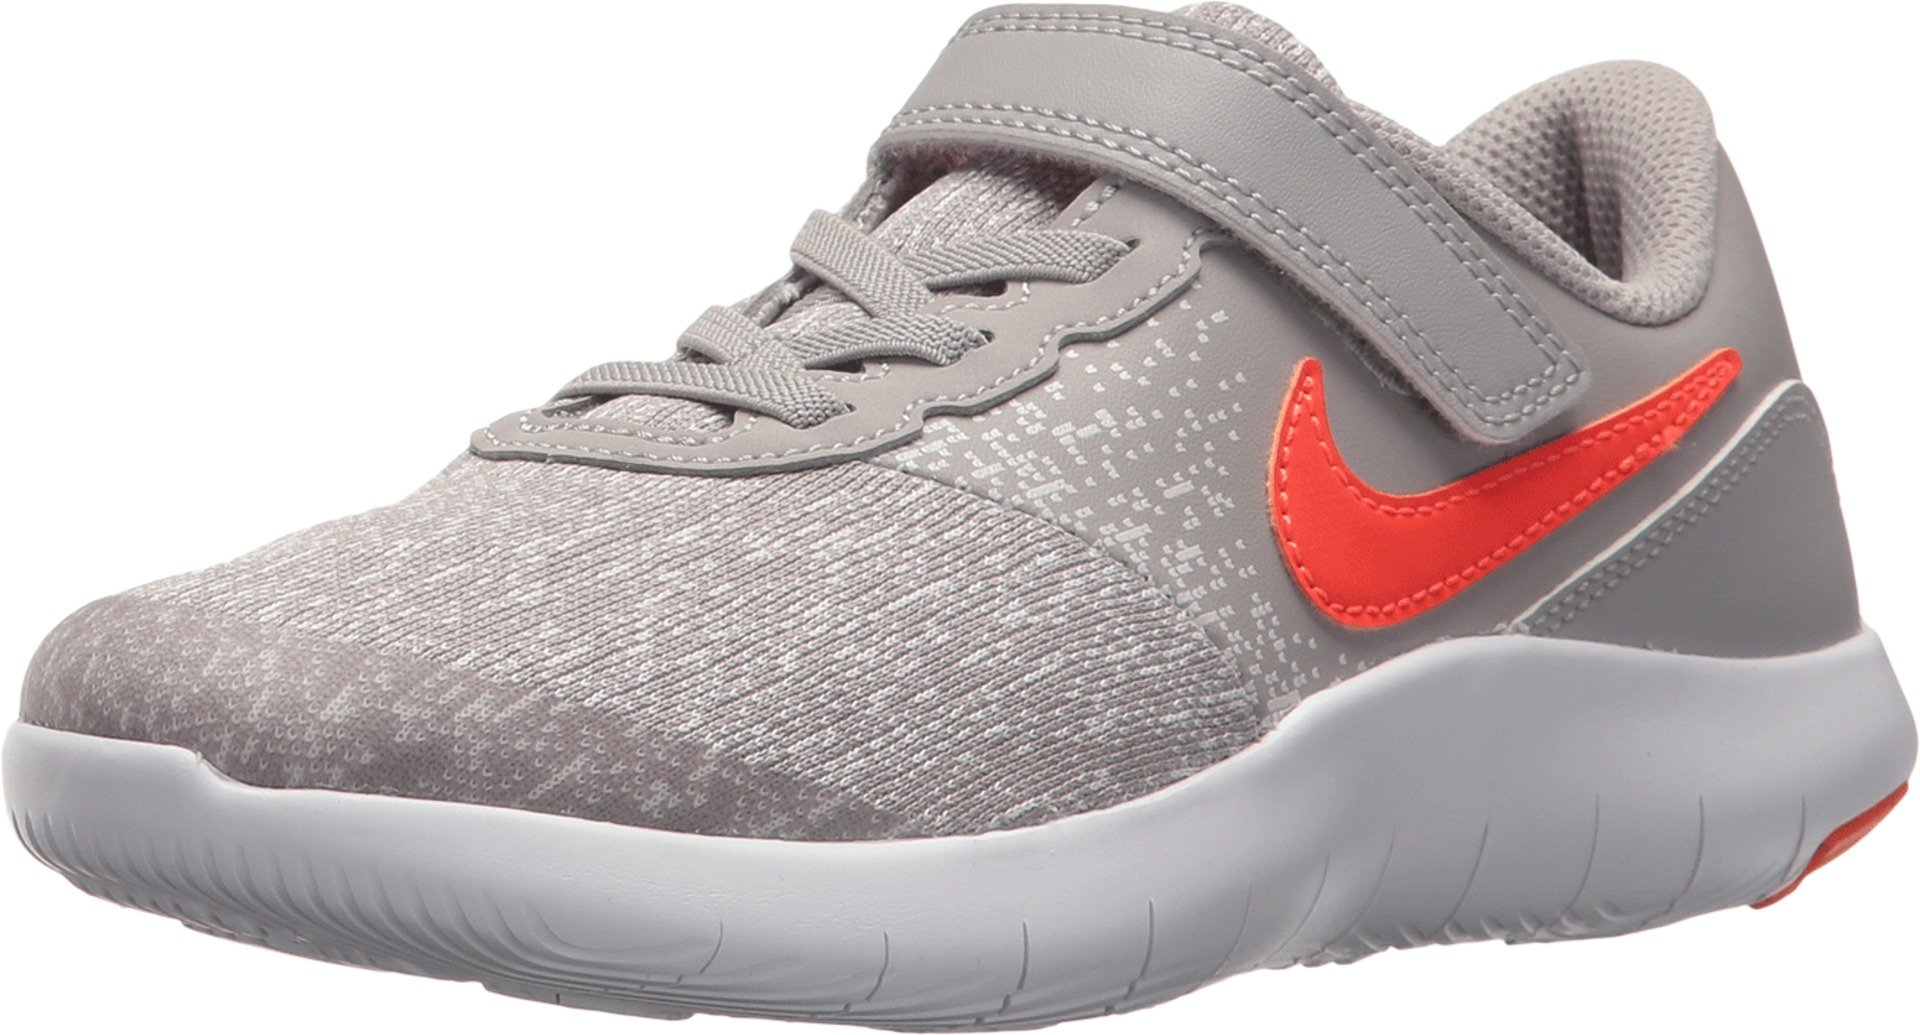 Nike Toddler/Youth Boys Flex Contact Sneakers (1 Infant, Atmsgy/Ttlcms)